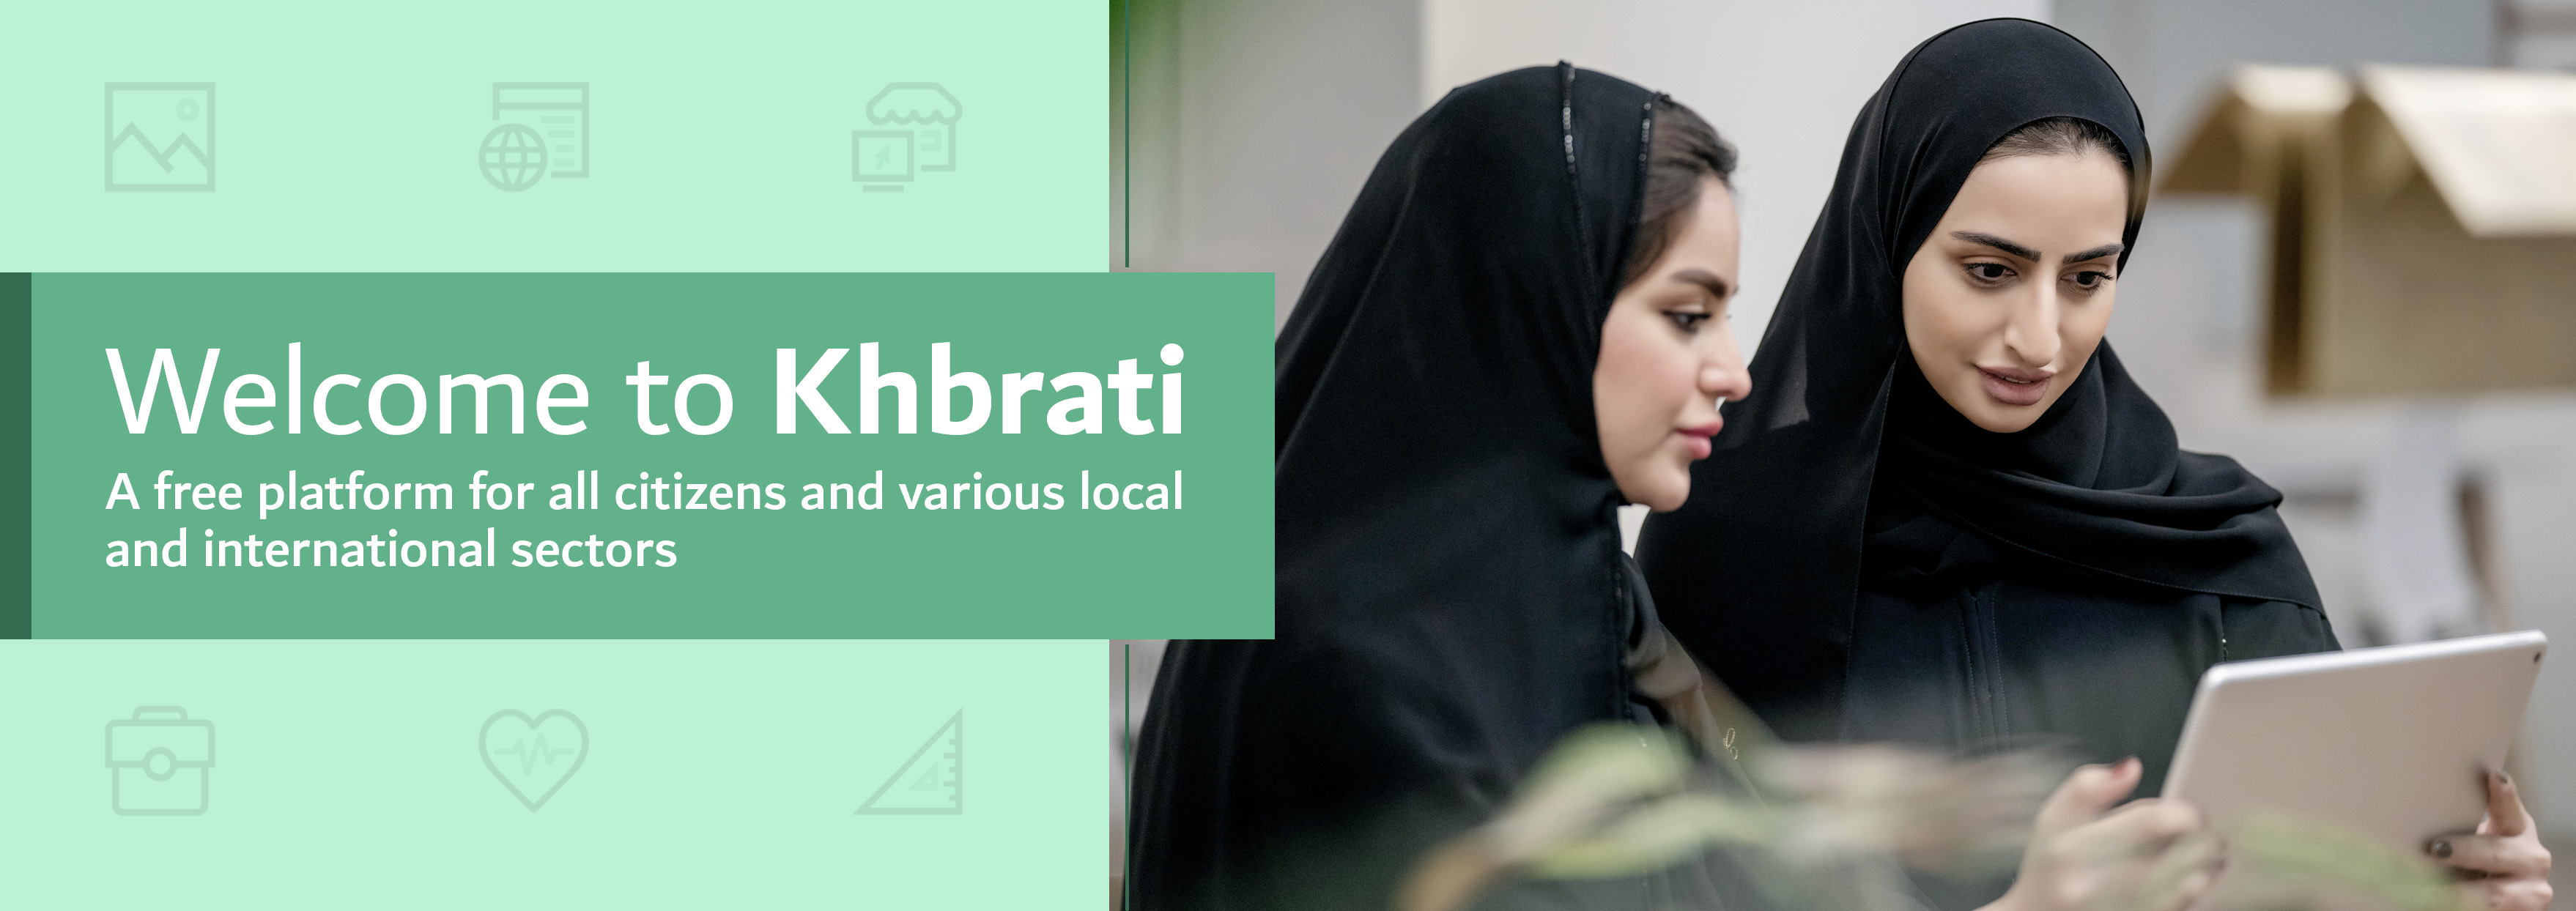 Welcome to Khbrati - A free platform for all citizens and various local and international sectors